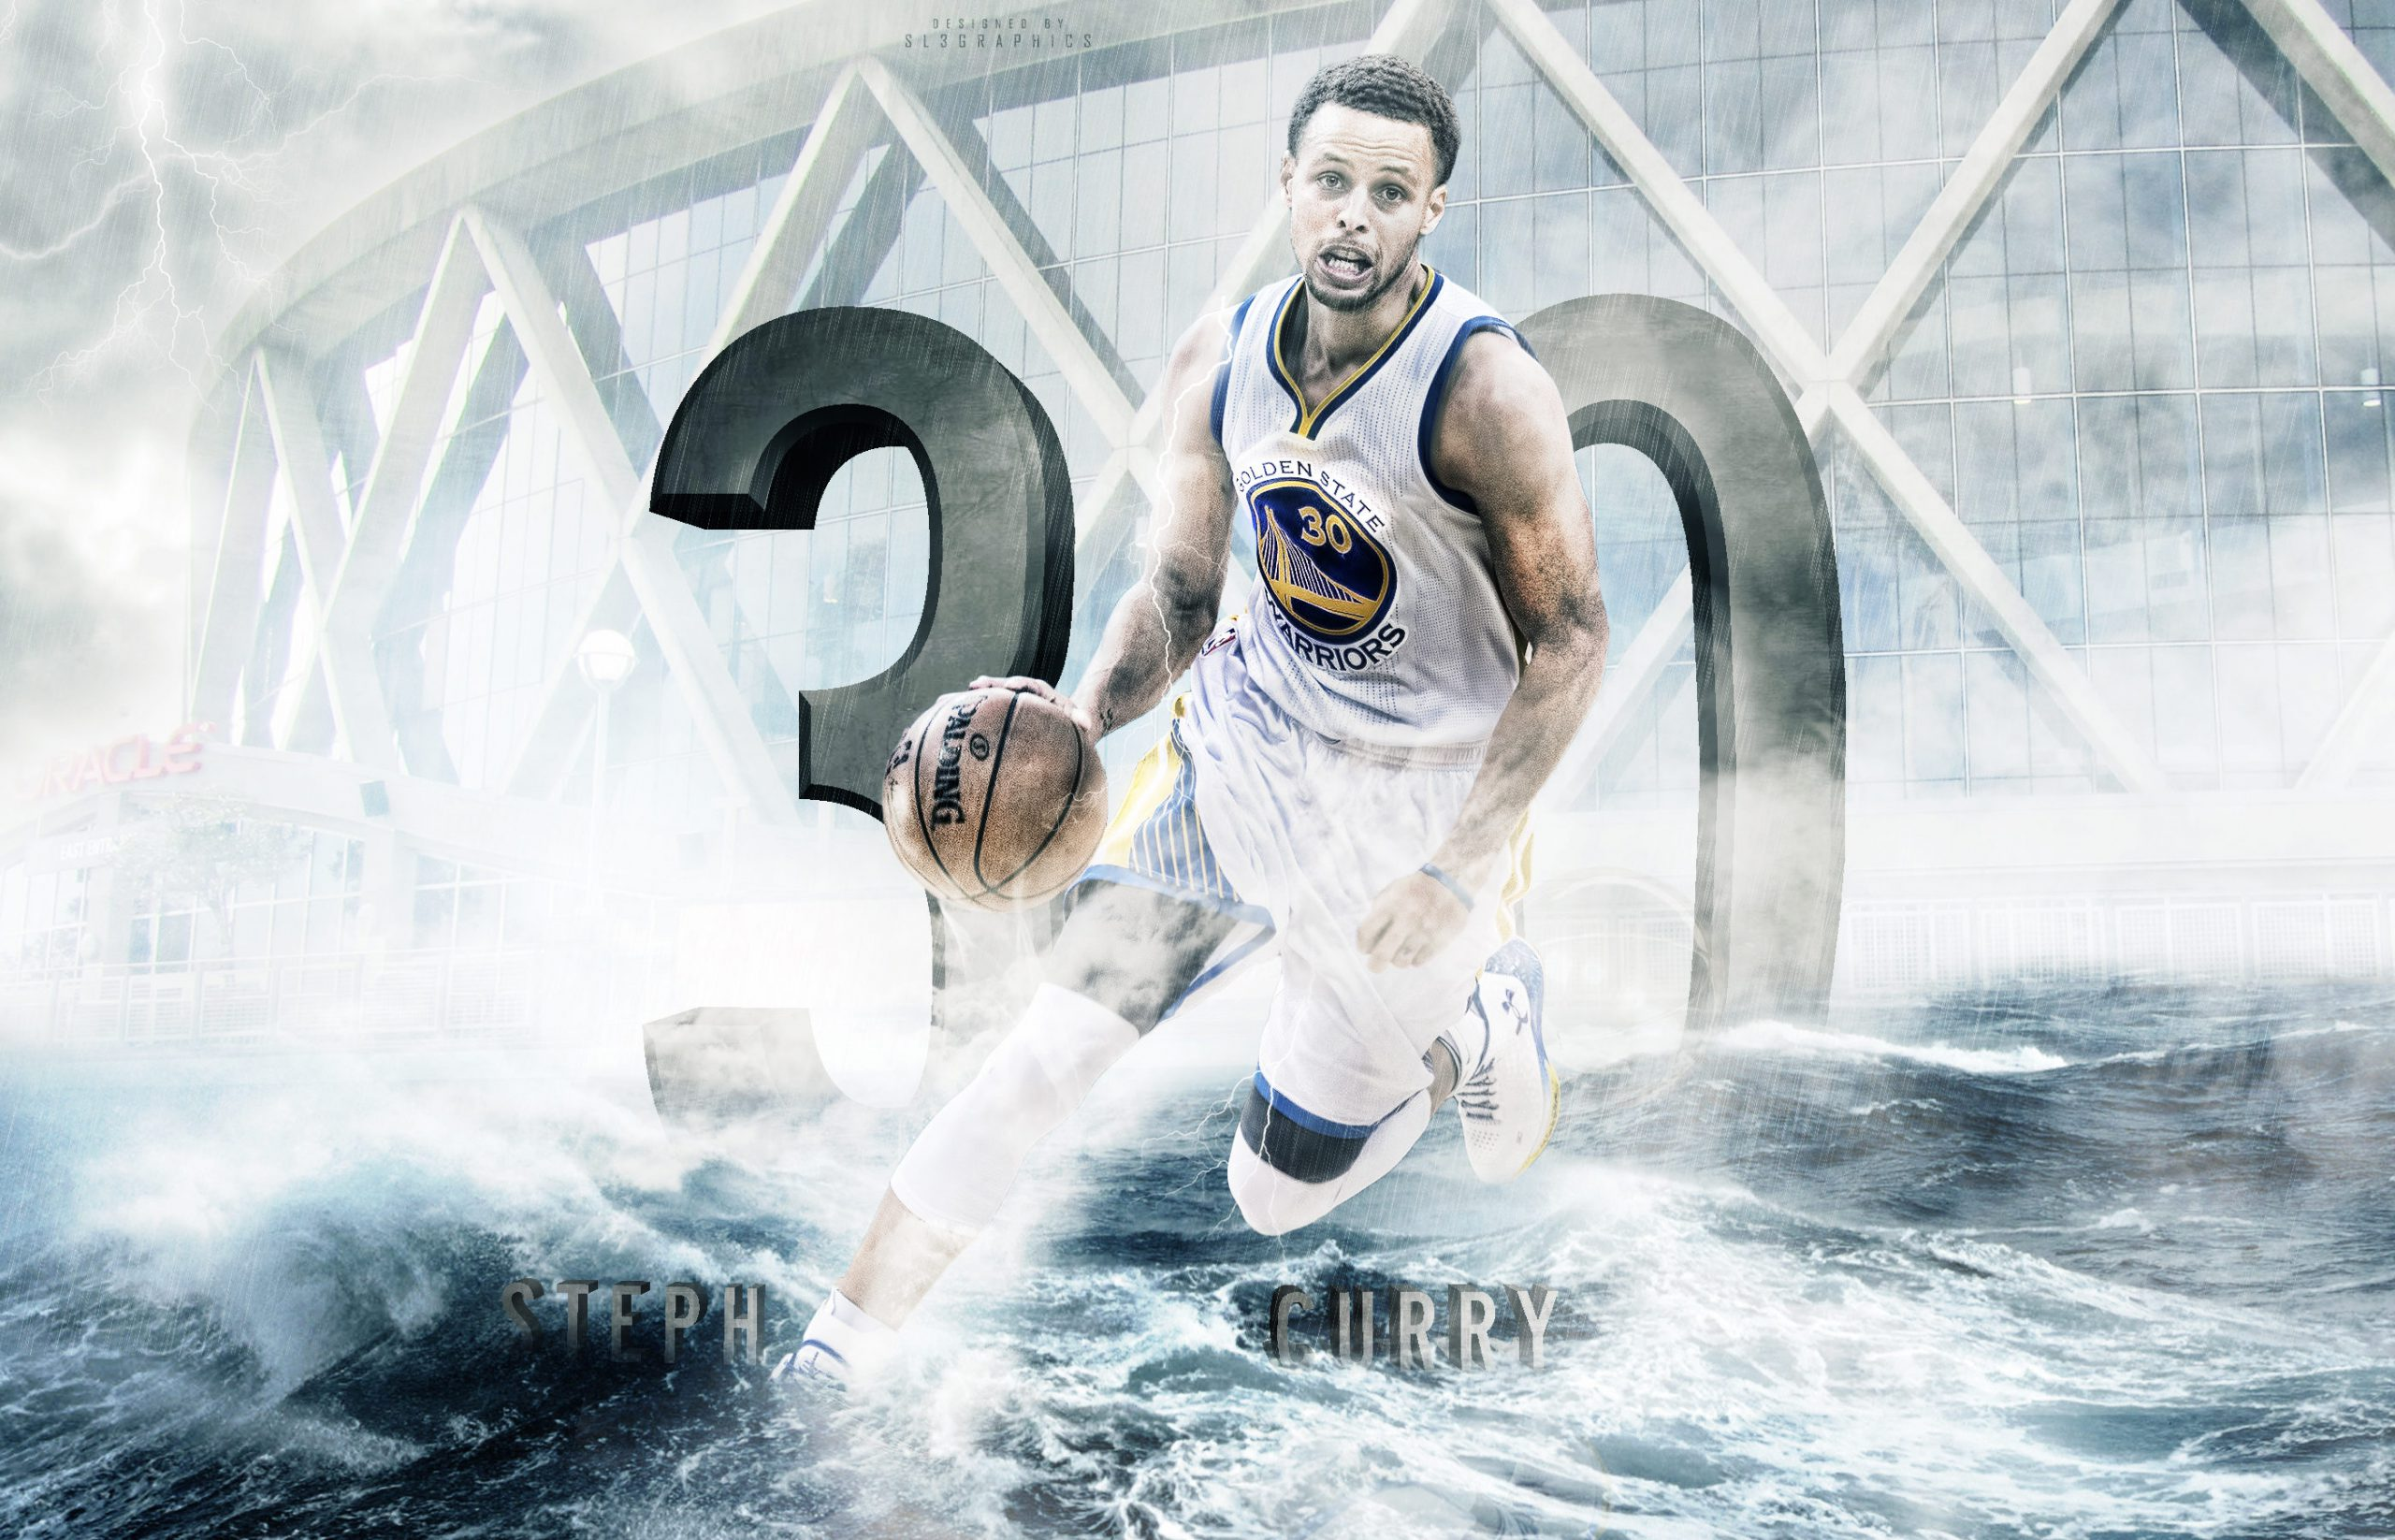 Stephen Curry Wallpaper Hd Kolpaper Awesome Free Hd Wallpapers